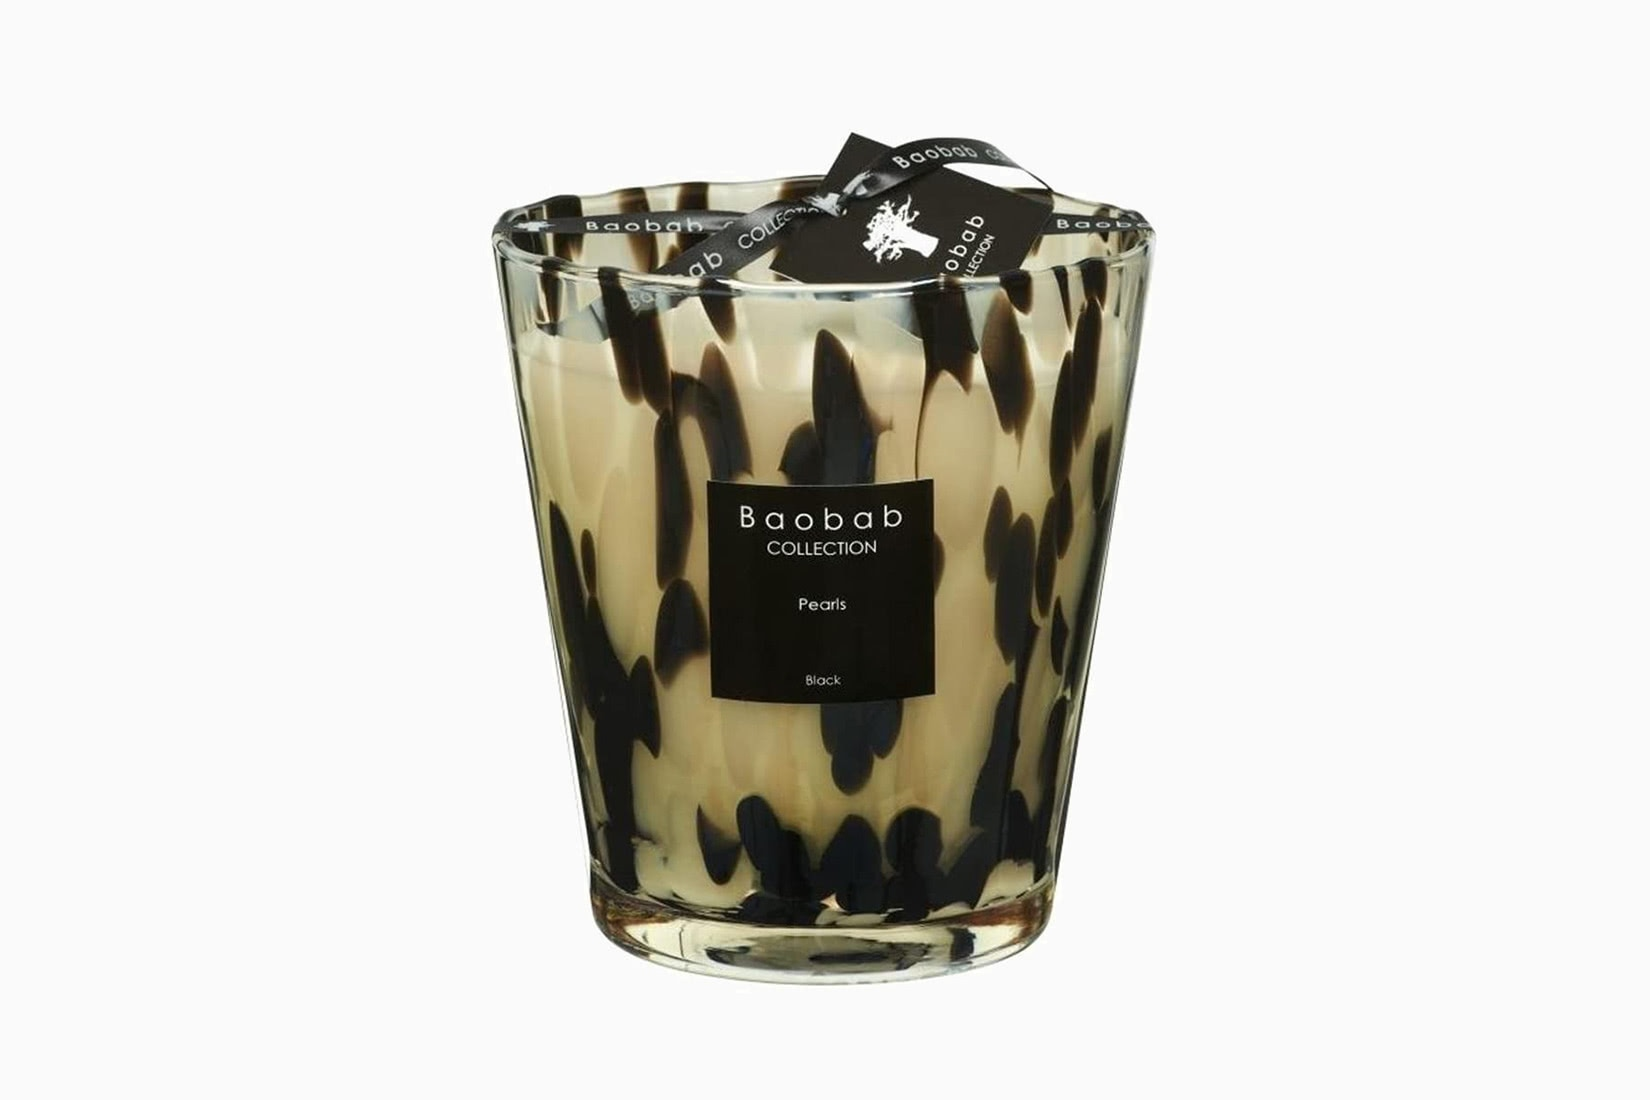 best scented candles baobab pearls black home fragrance - Luxe Digital